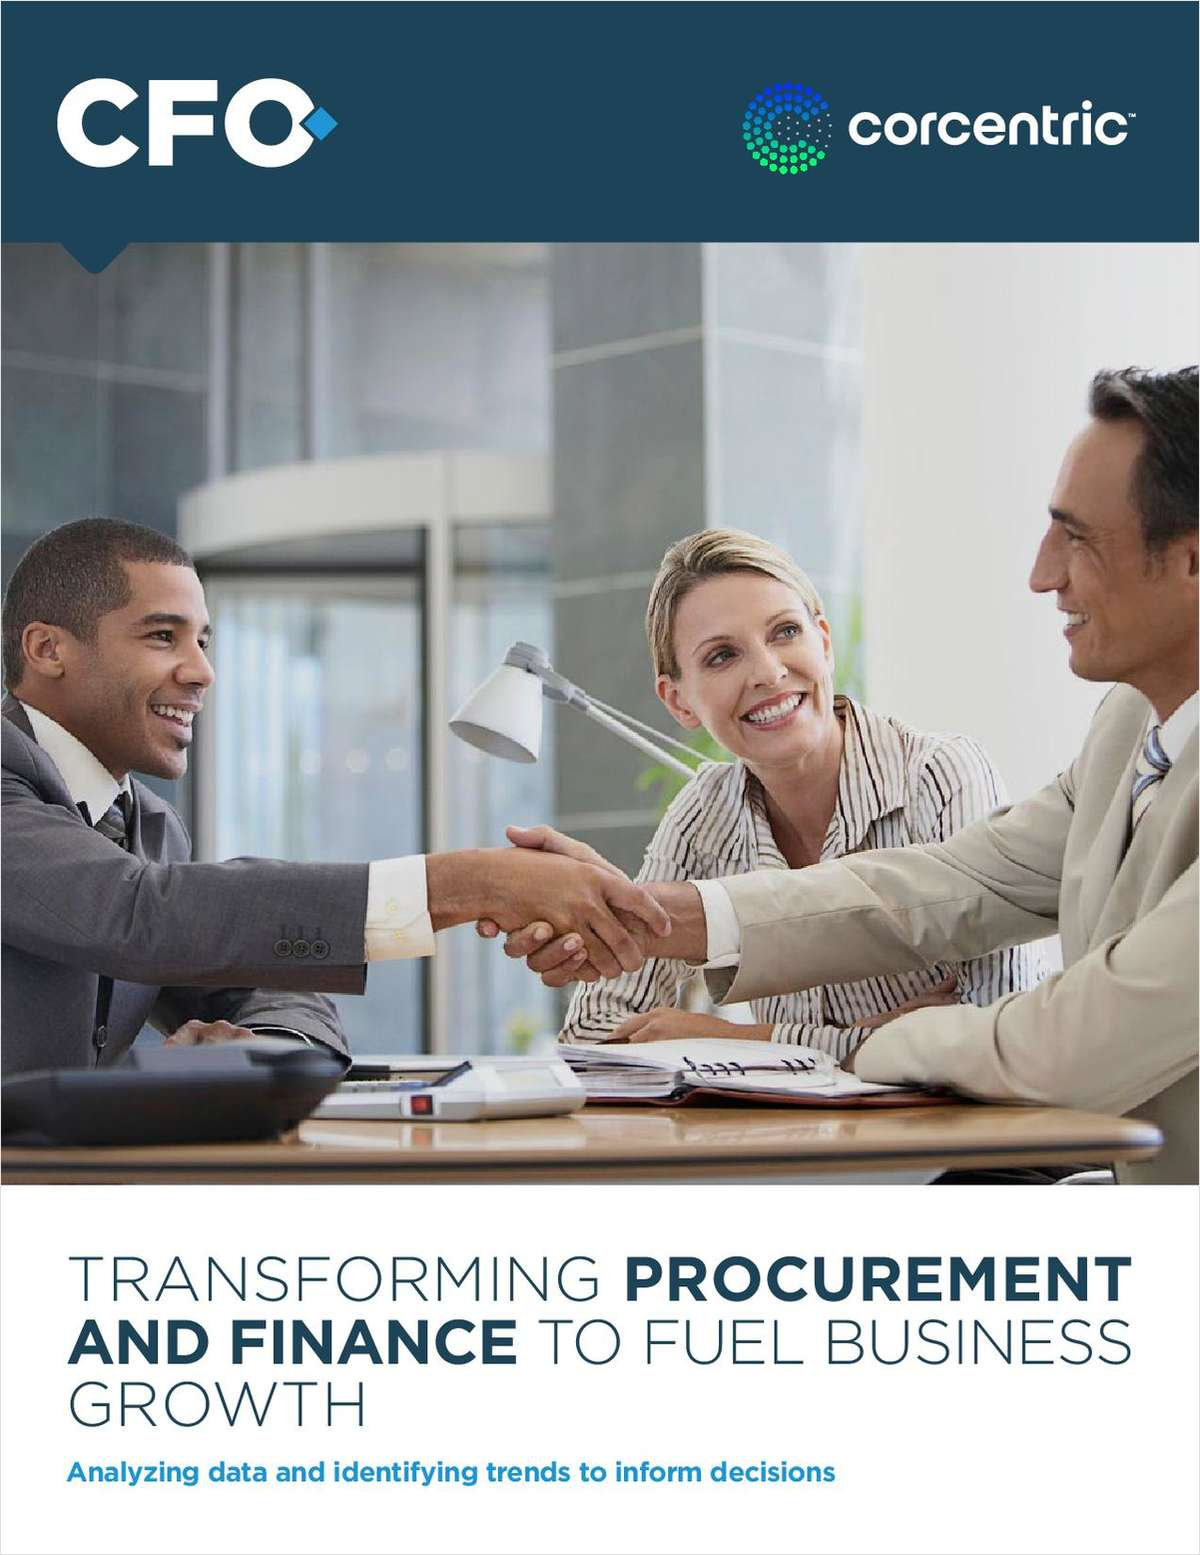 Transforming Procurement and Finance to Fuel Business Growth from CFO.com